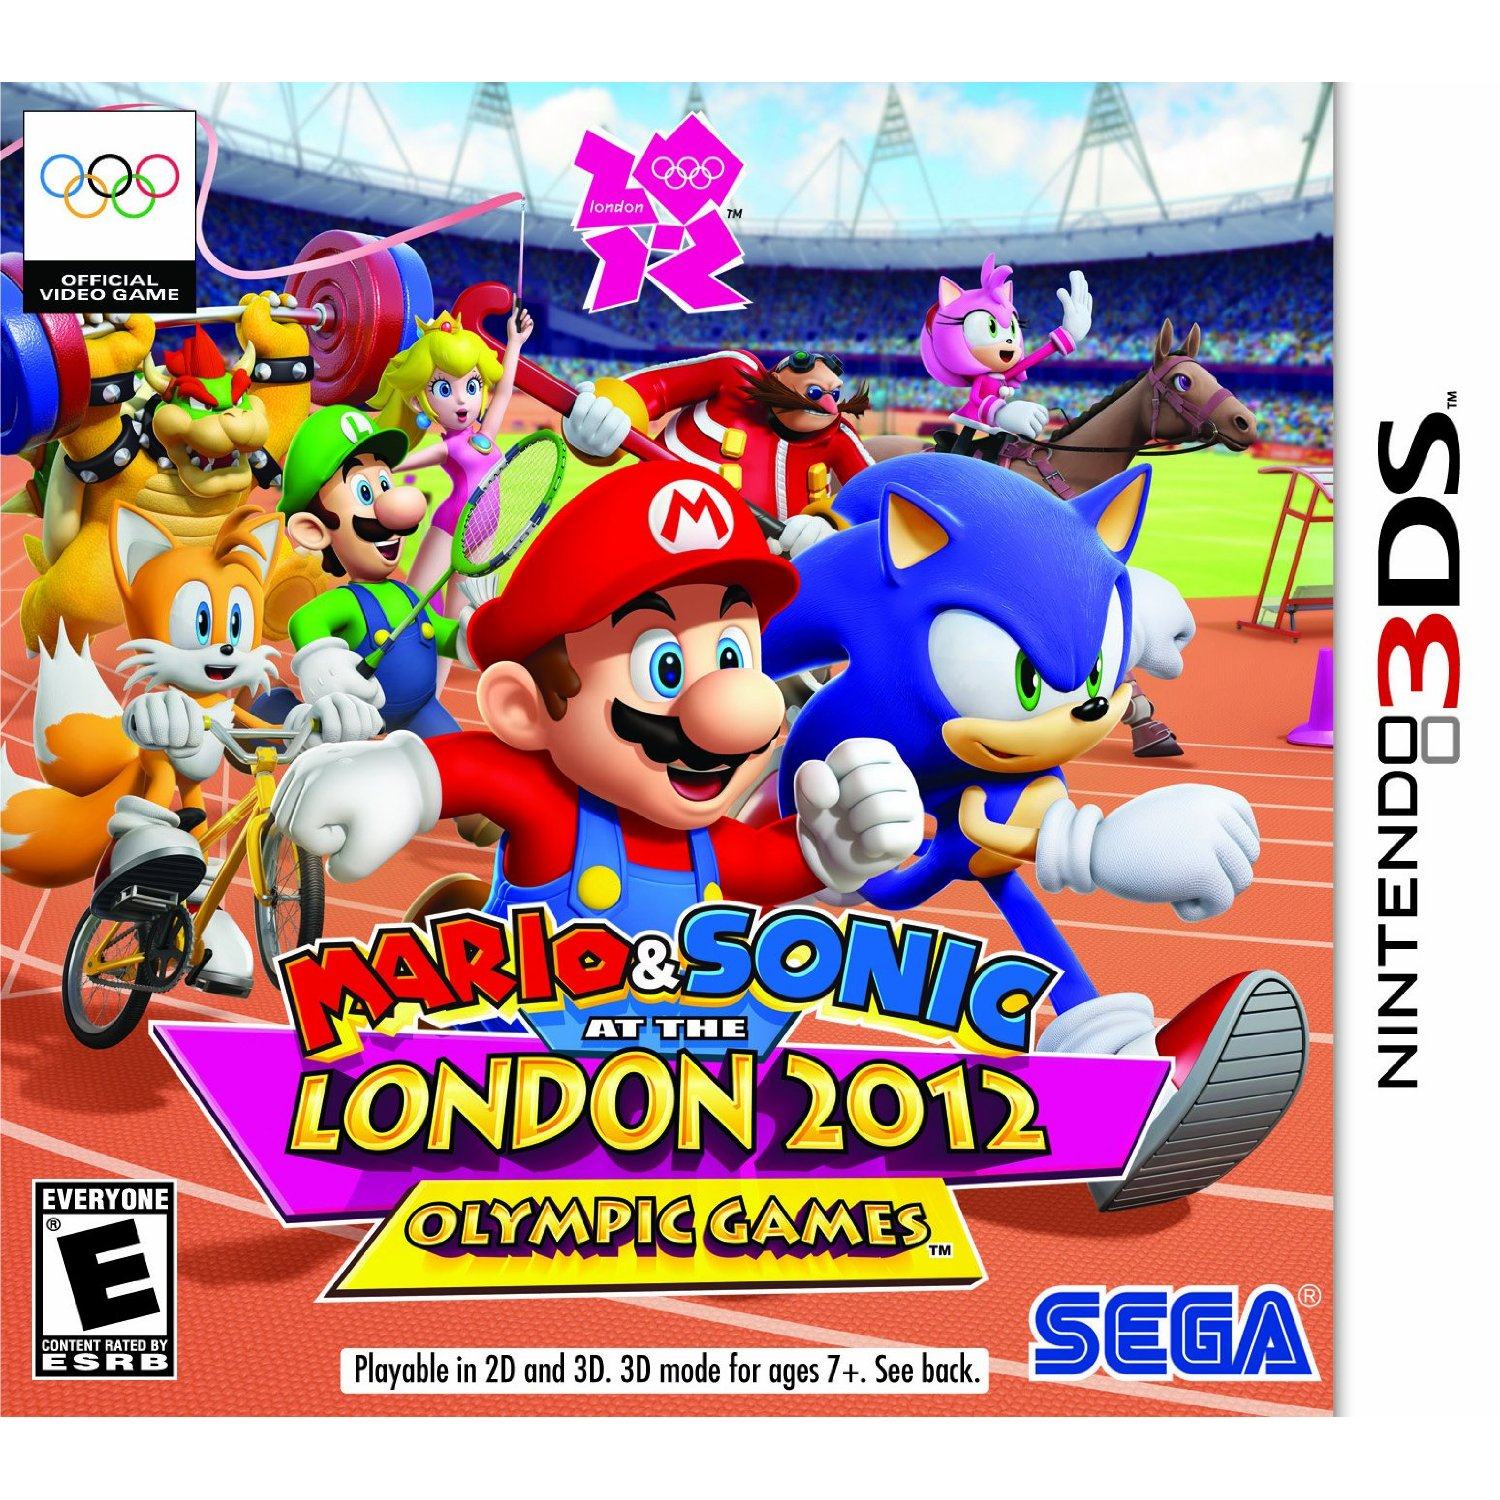 Mario And Sonic At The London 2012 Olympic games  Mario-Sonic-at-the-London-2012-Olympic-Games-3DS-US-Box-Art